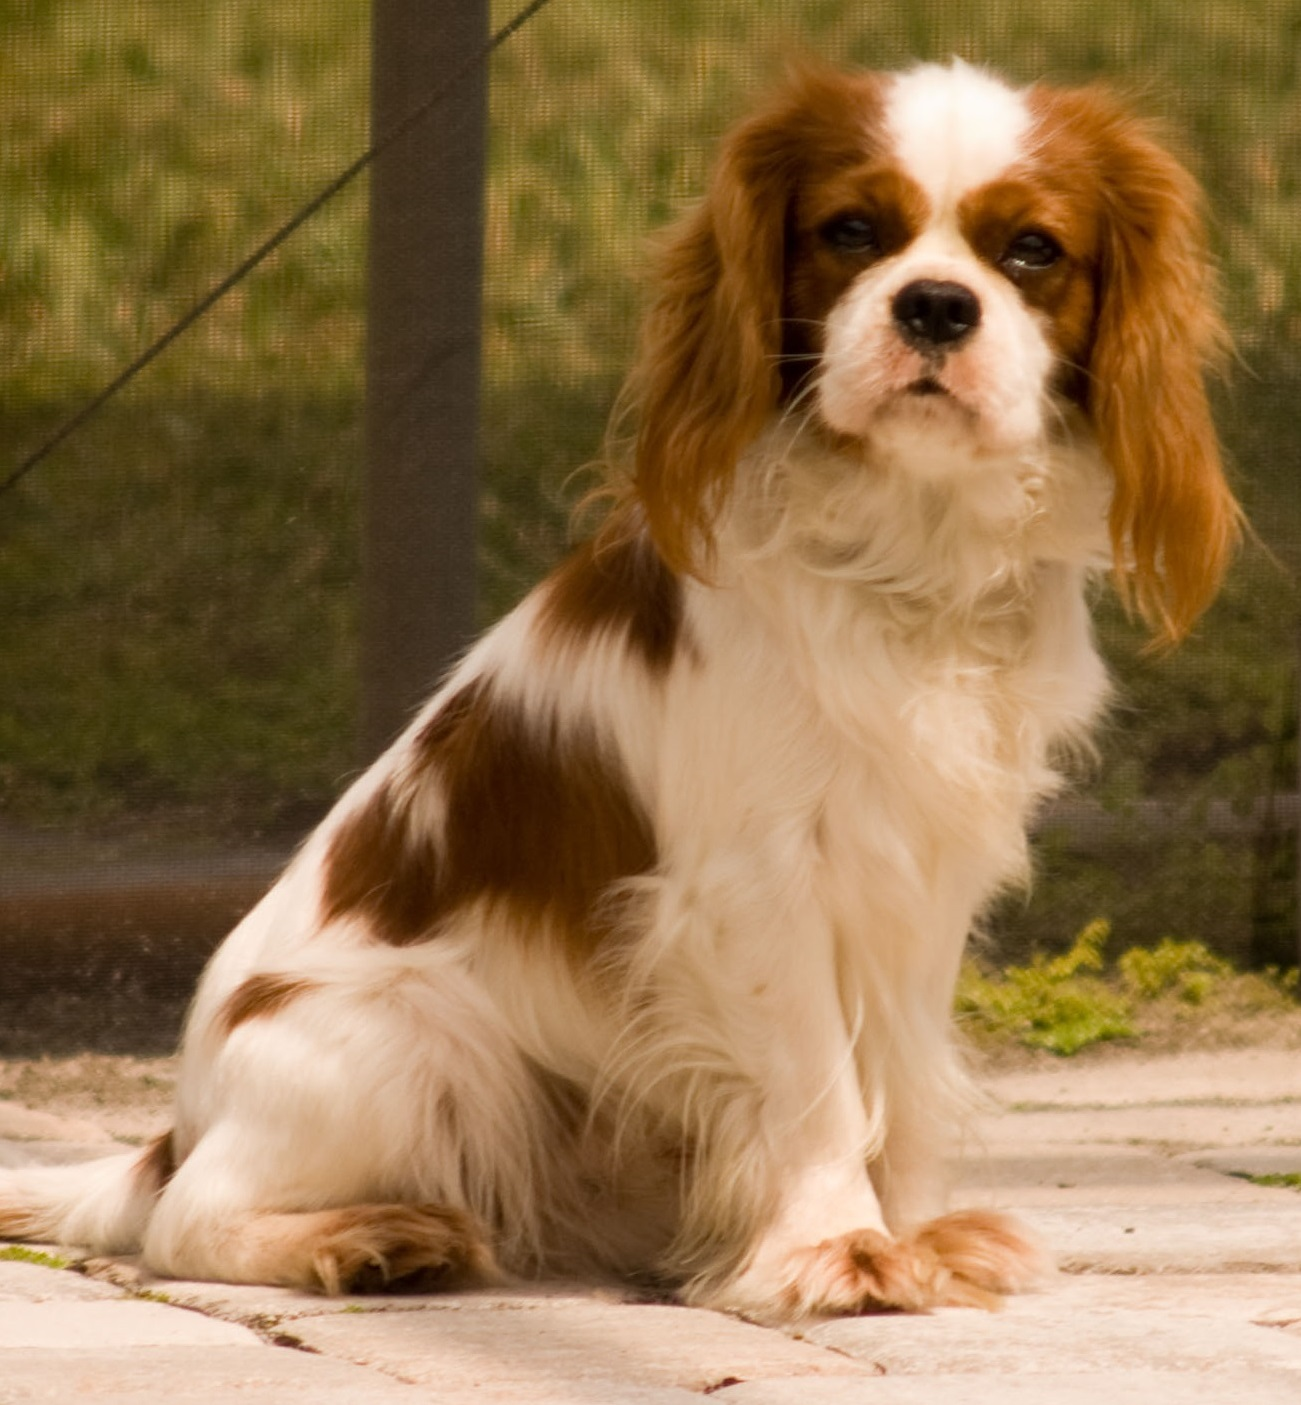 Cavalier king charles spaniels miscellaneous disorders nvjuhfo Image collections